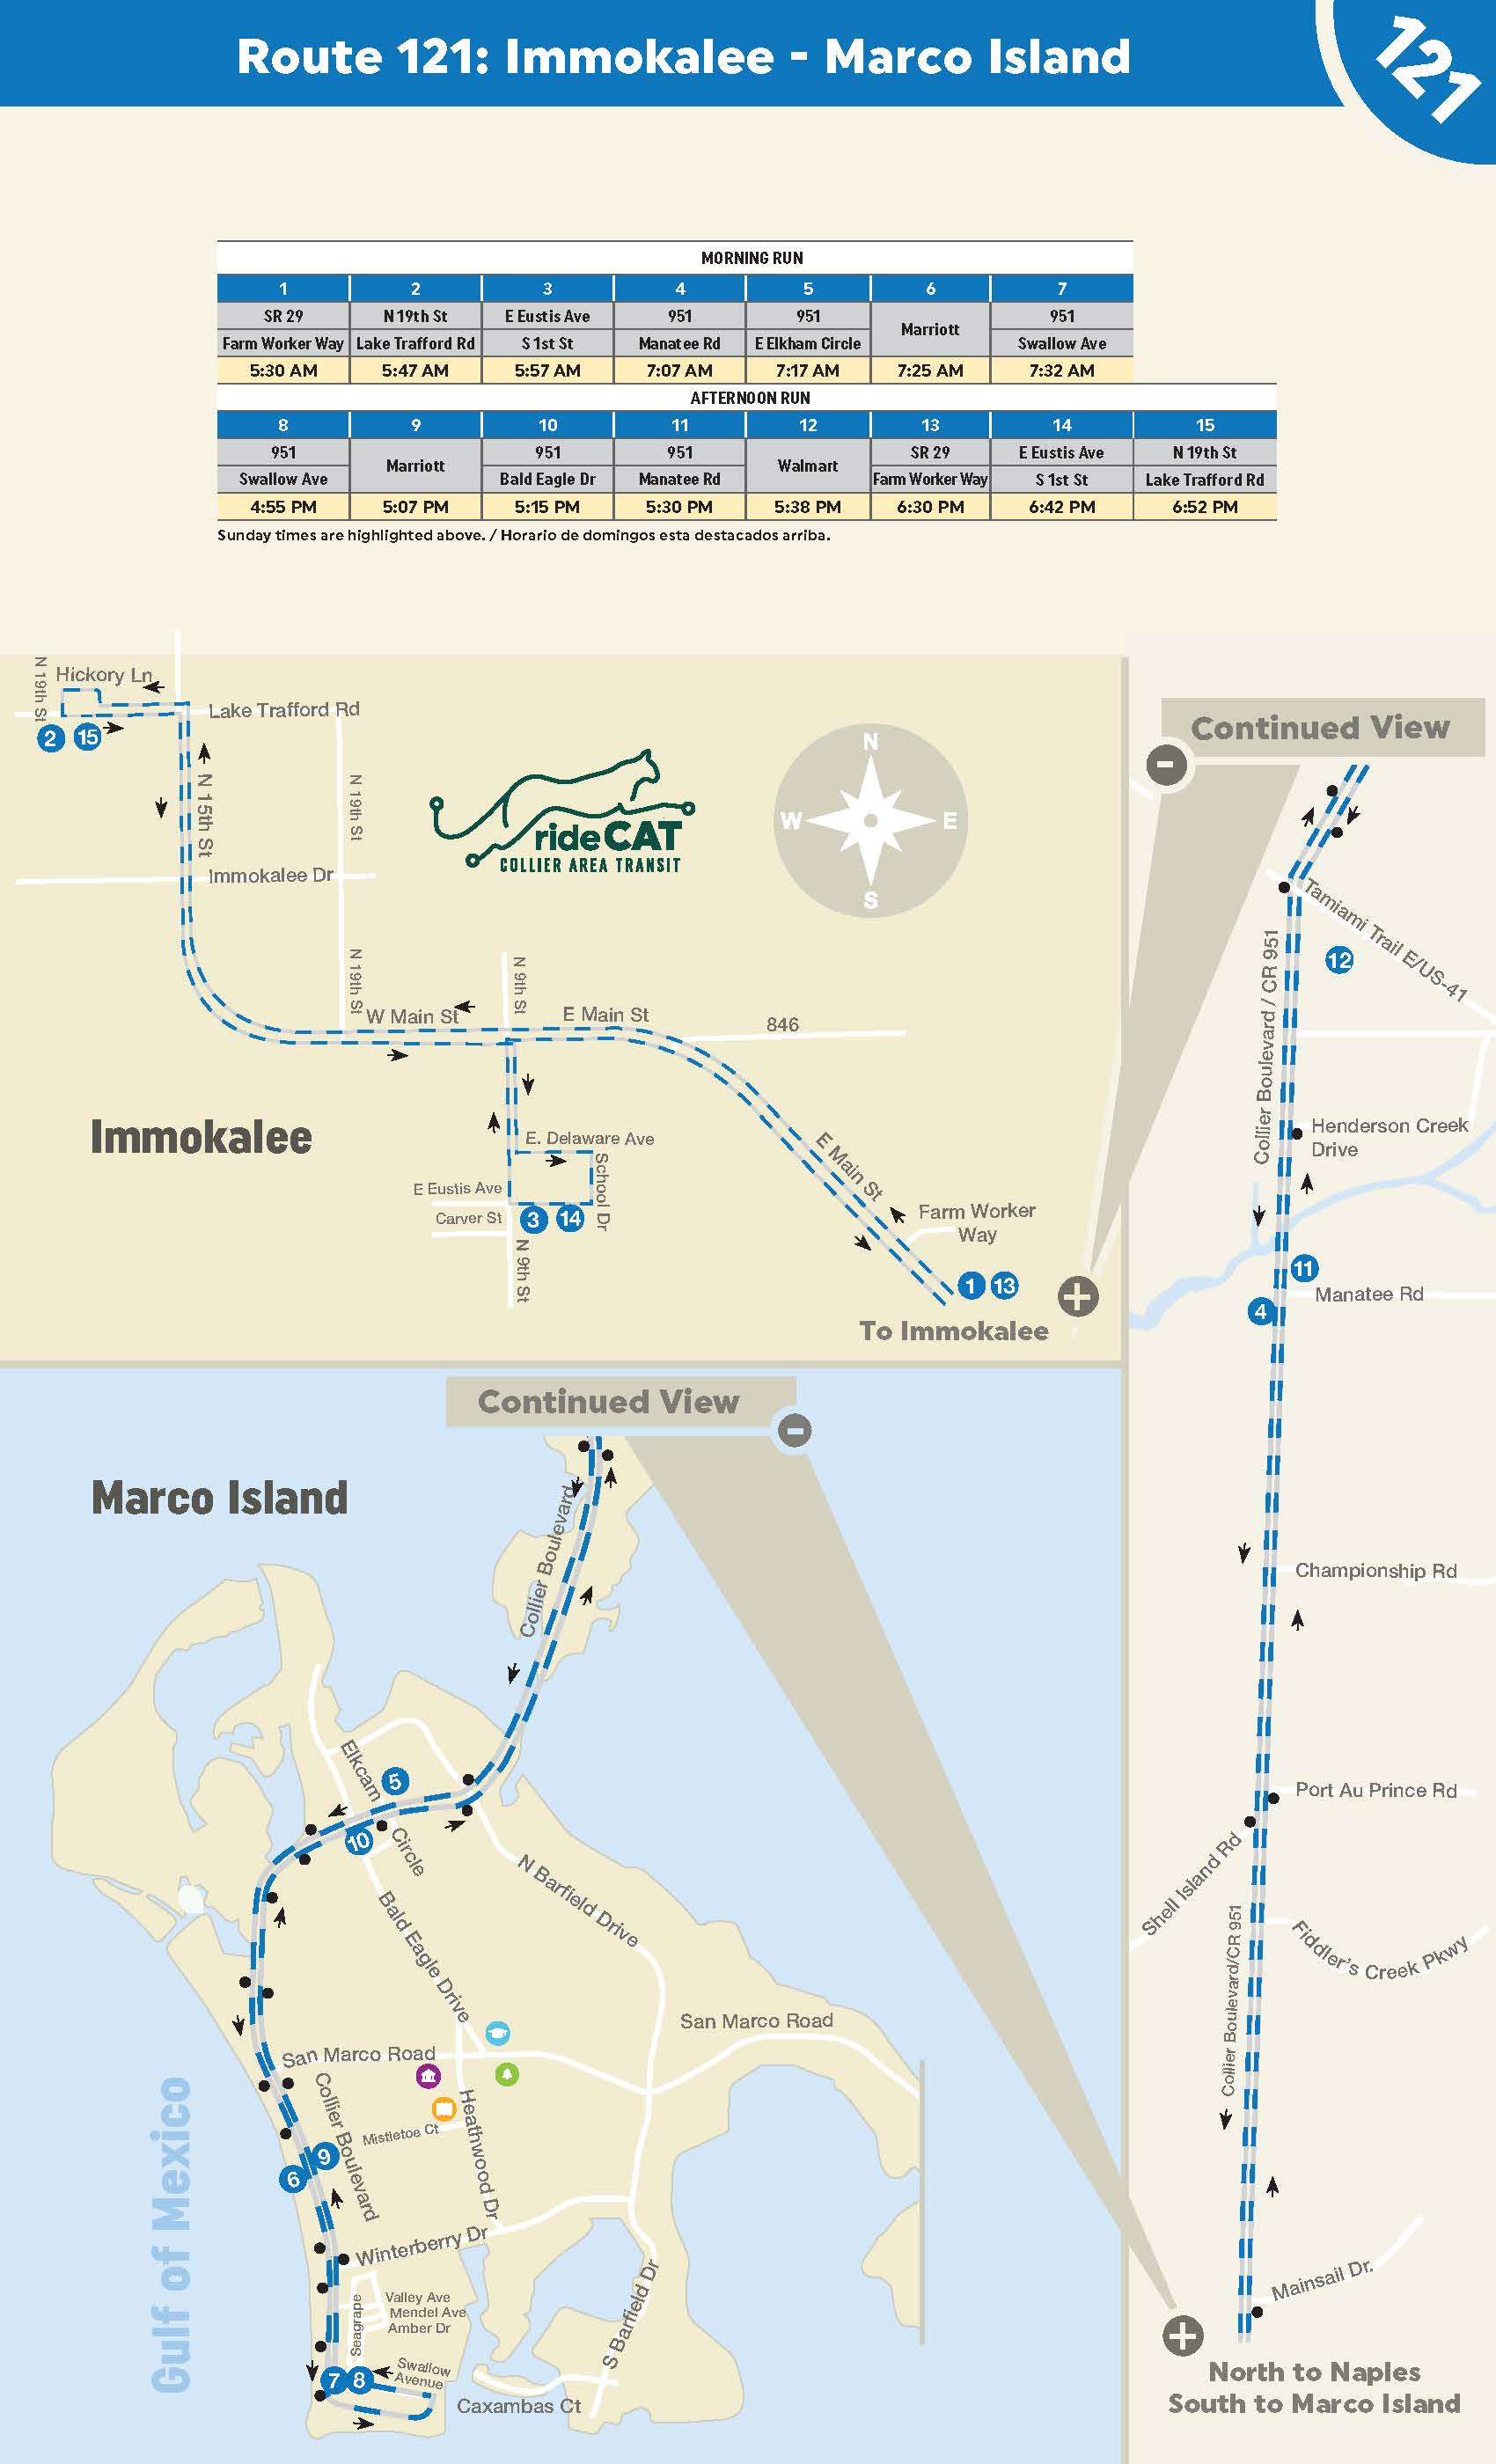 Immokalee to Marco Island Express